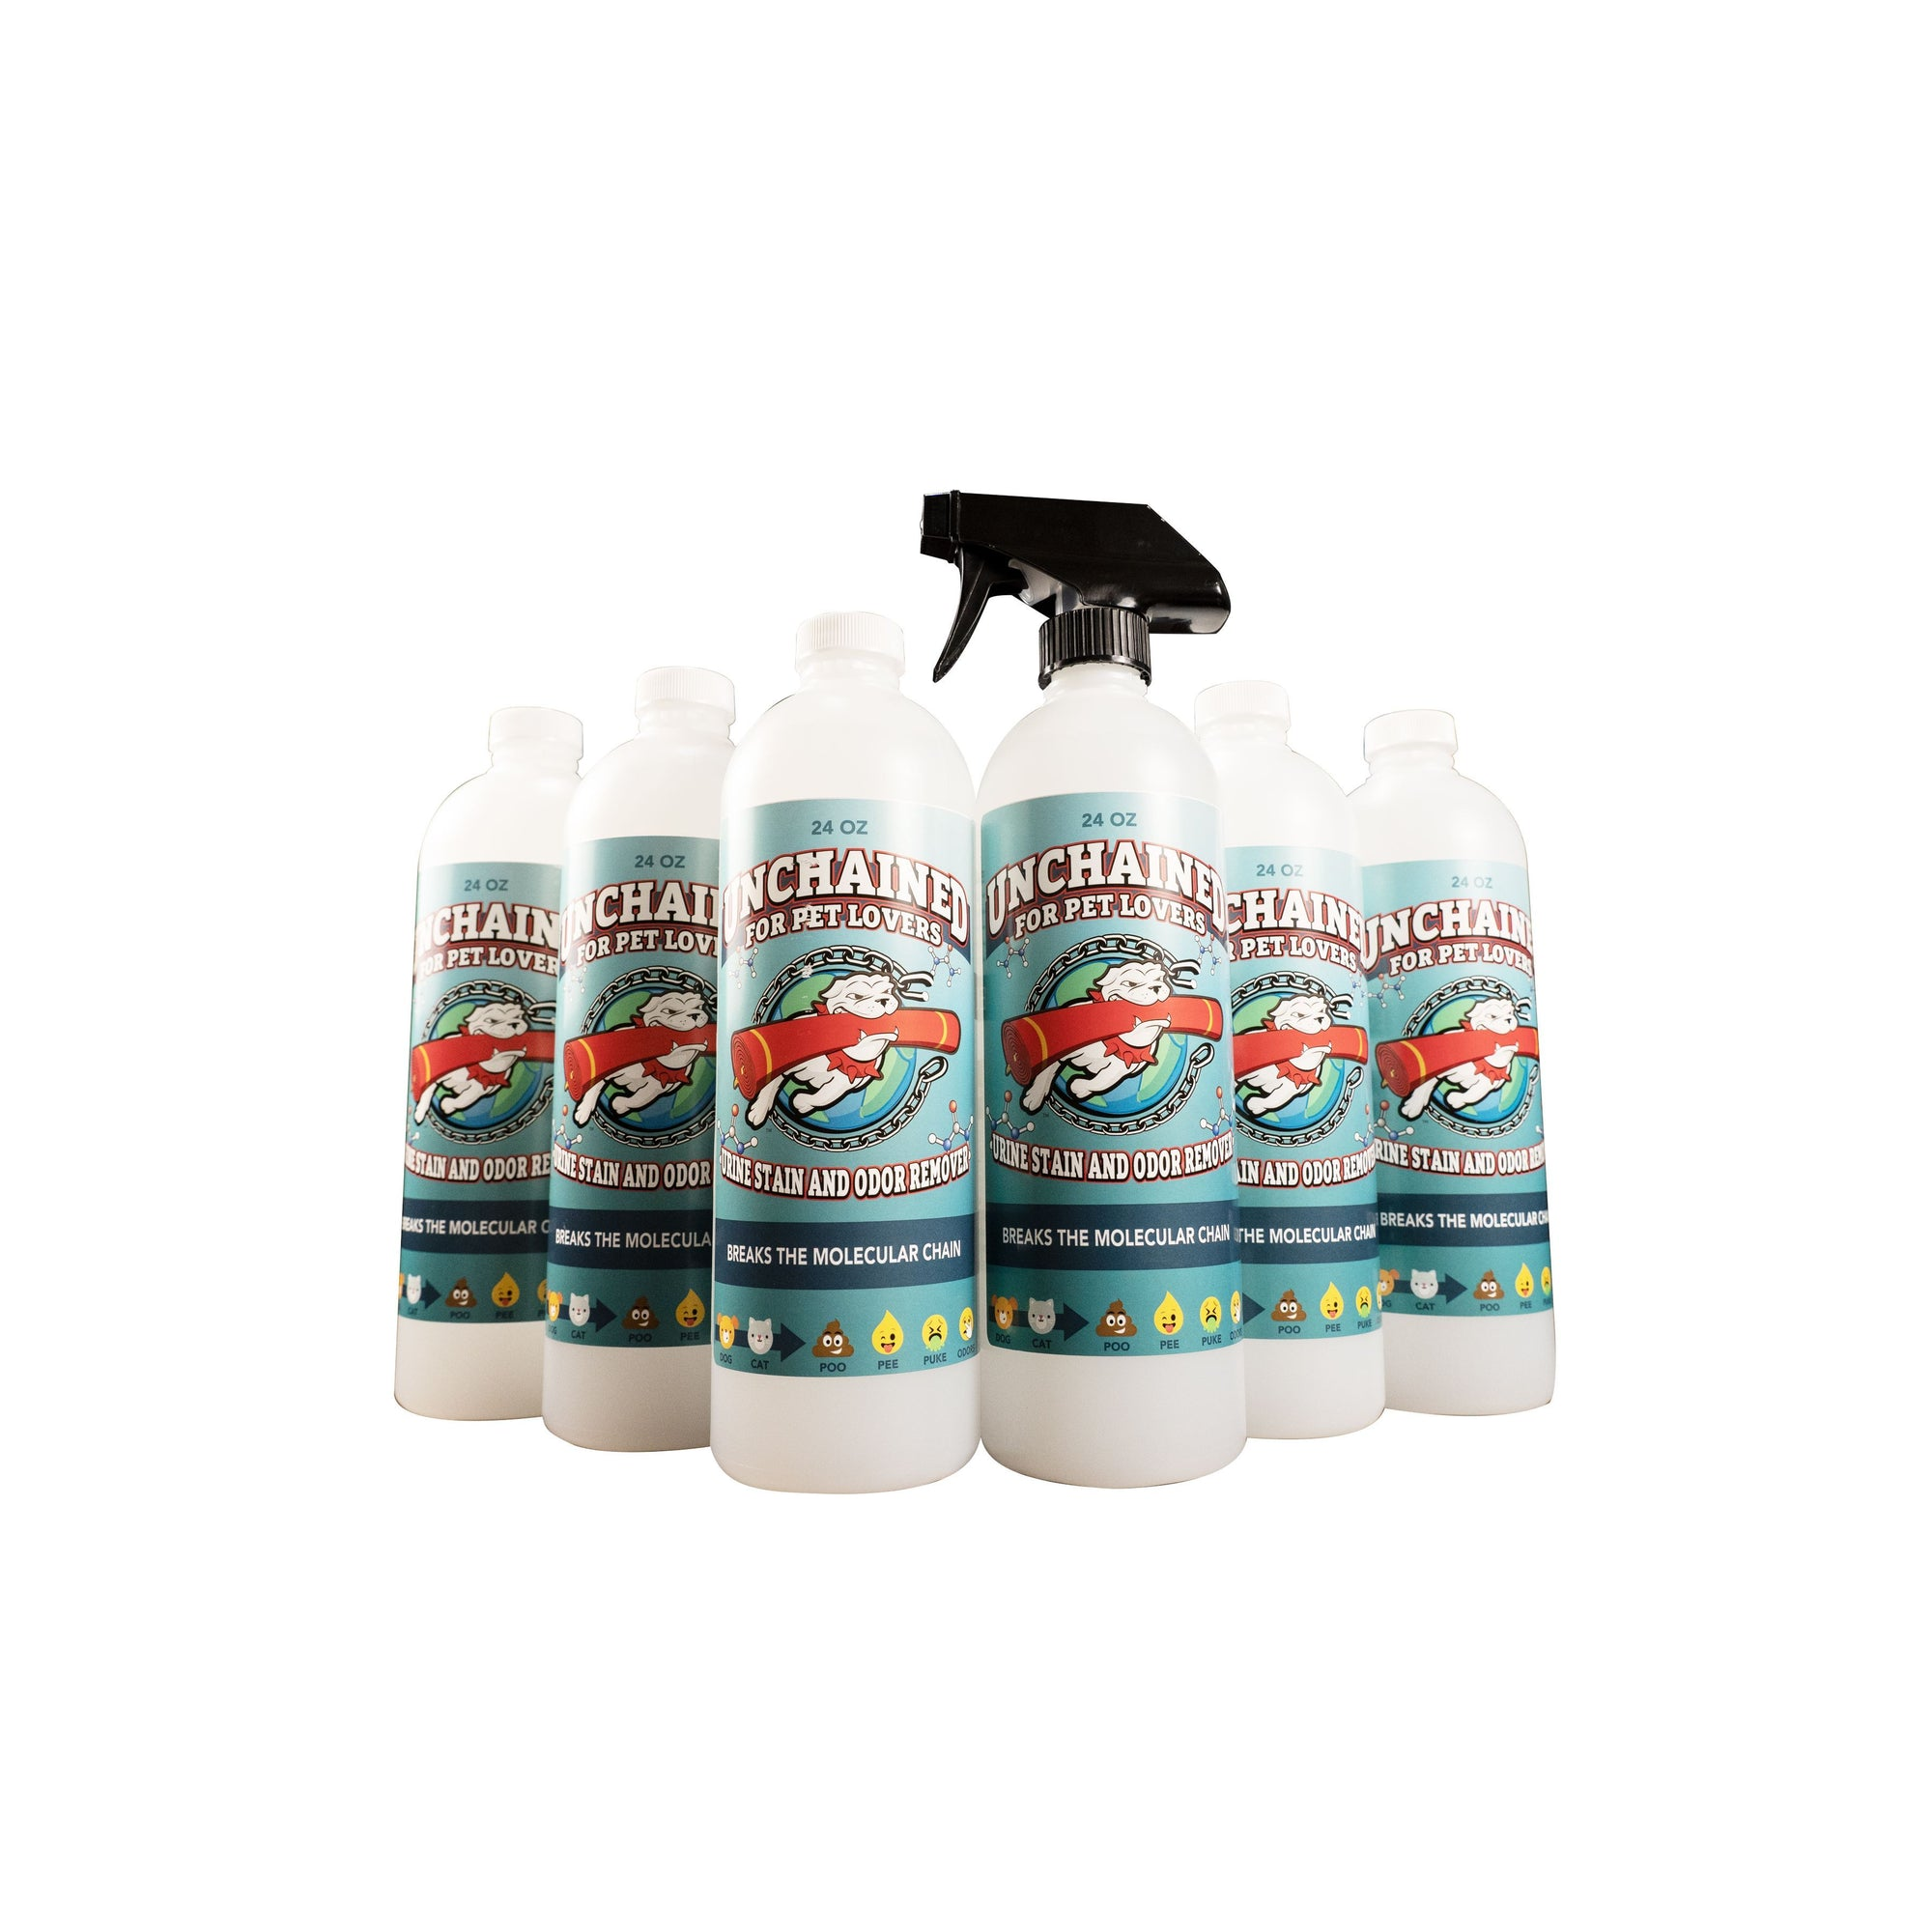 Wholesale: Unchained Pet Stain Remover 24oz 6 Pack (Min. 2 Cases)